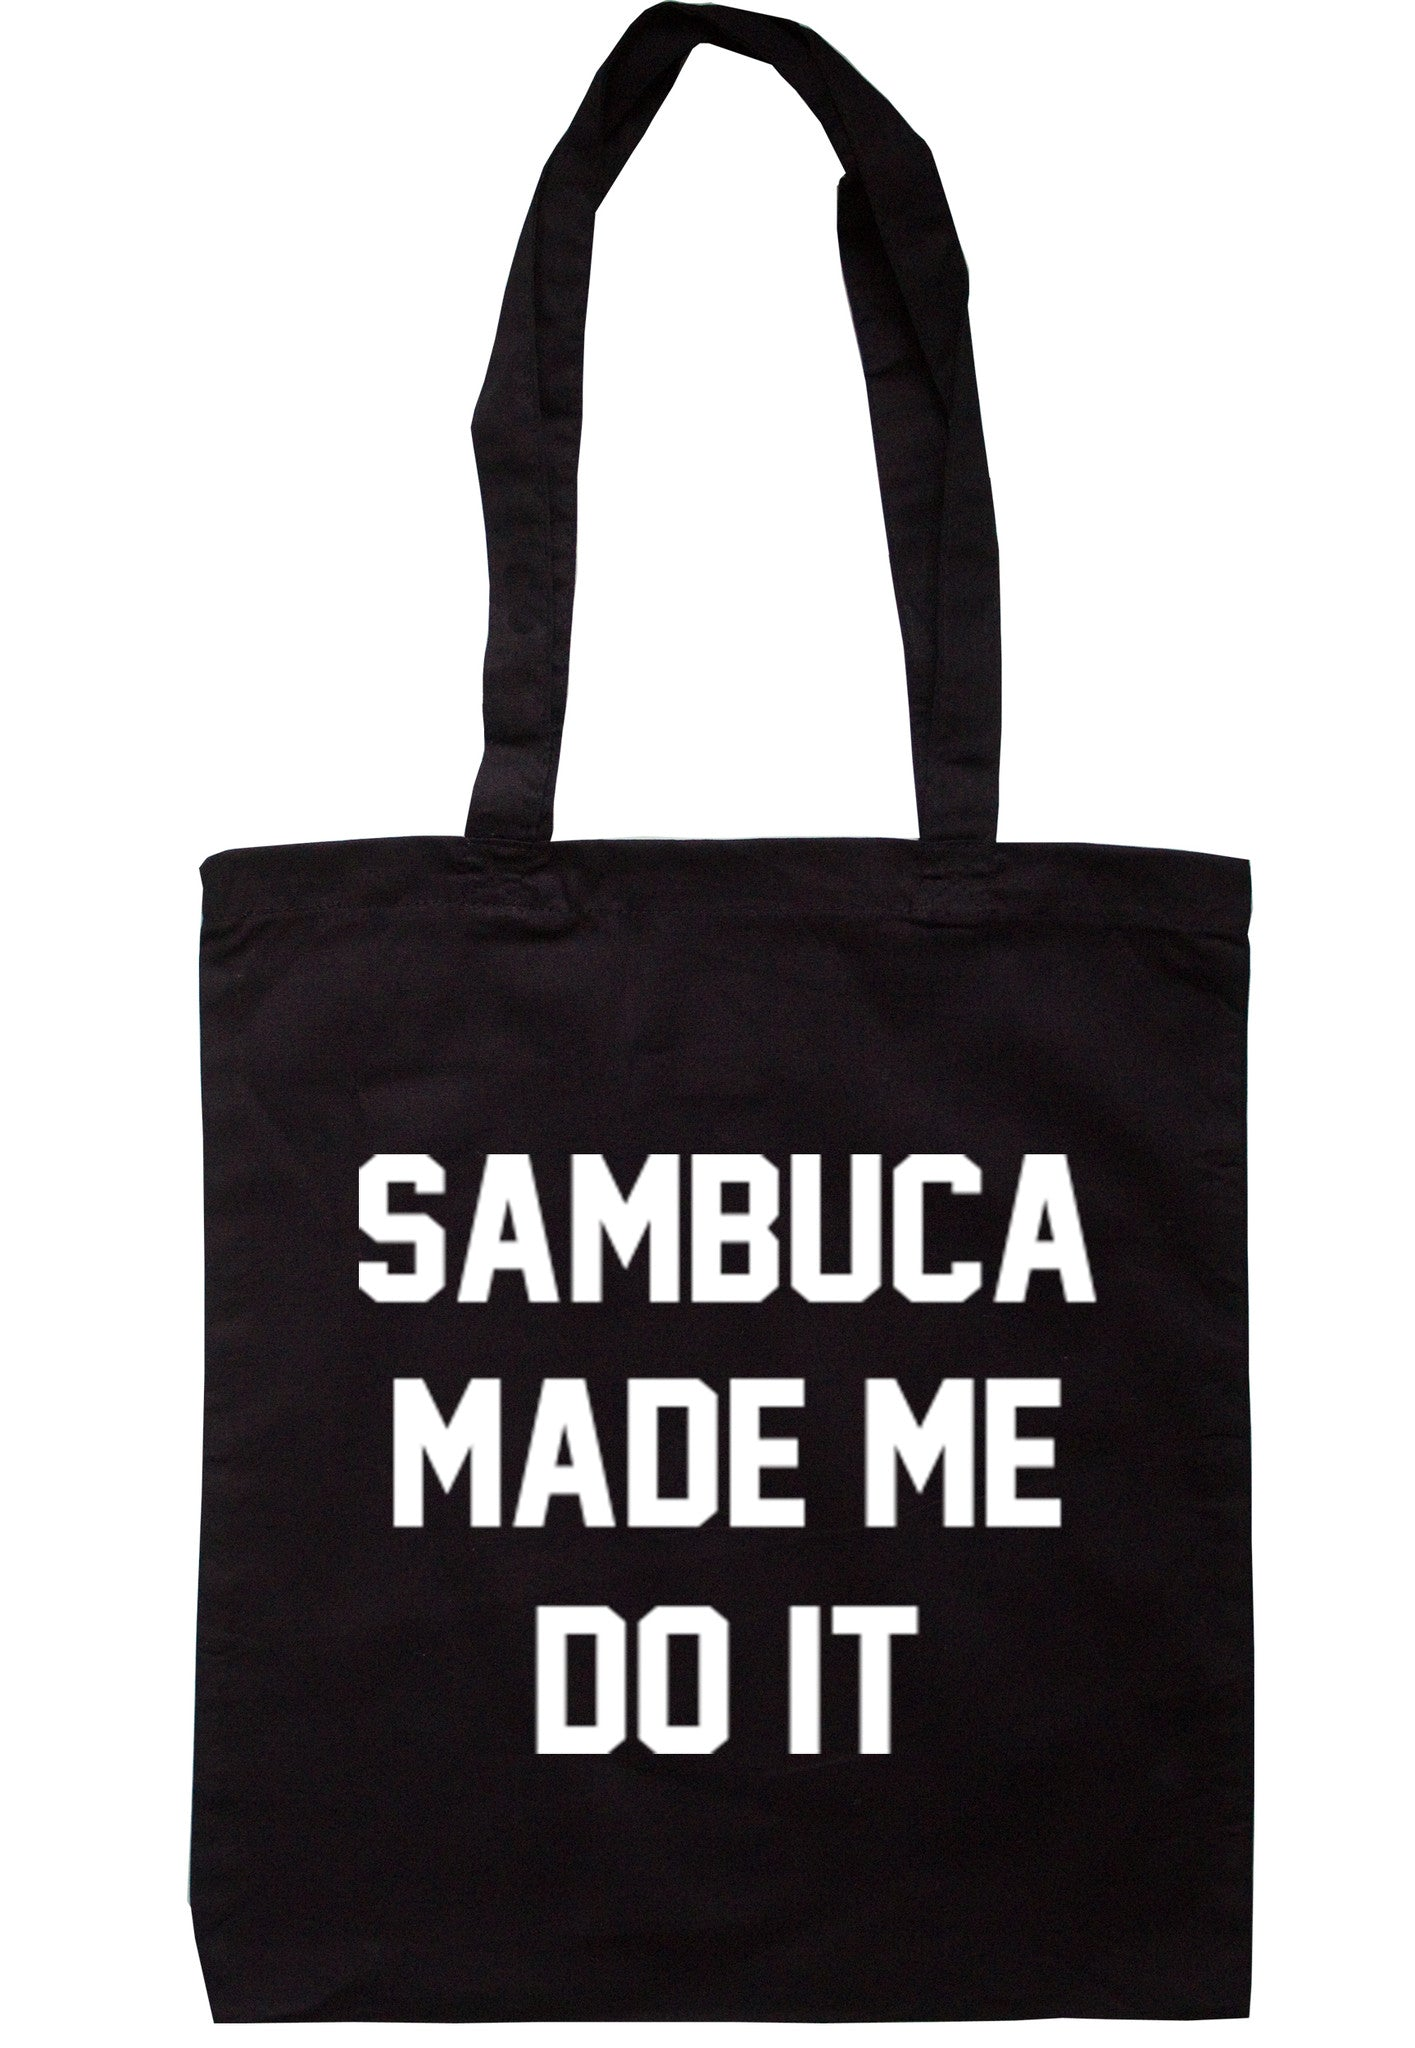 Sambuca Made Me Do It Tote Bag TB0016 - Illustrated Identity Ltd.